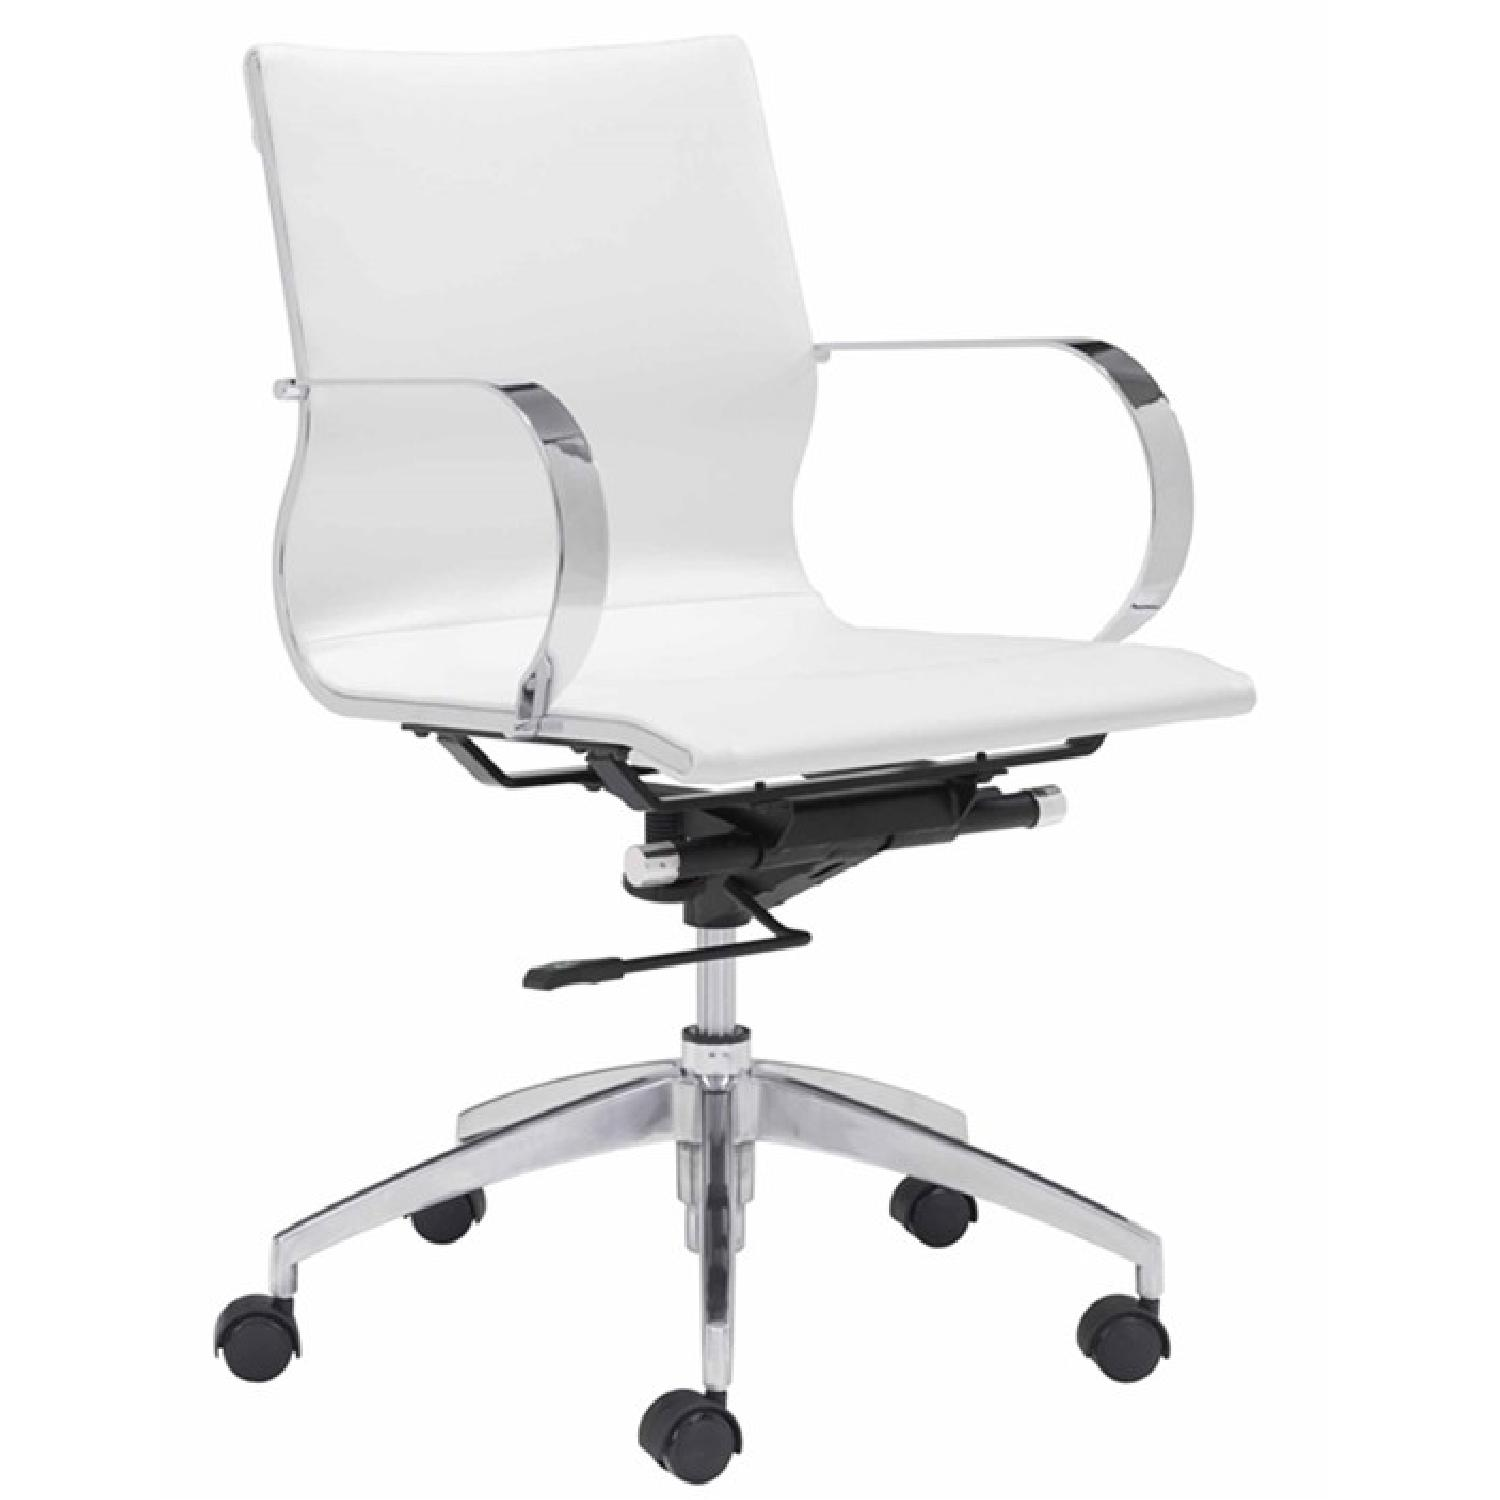 Modern Mid Back Office Chair in White Leatherette - image-0